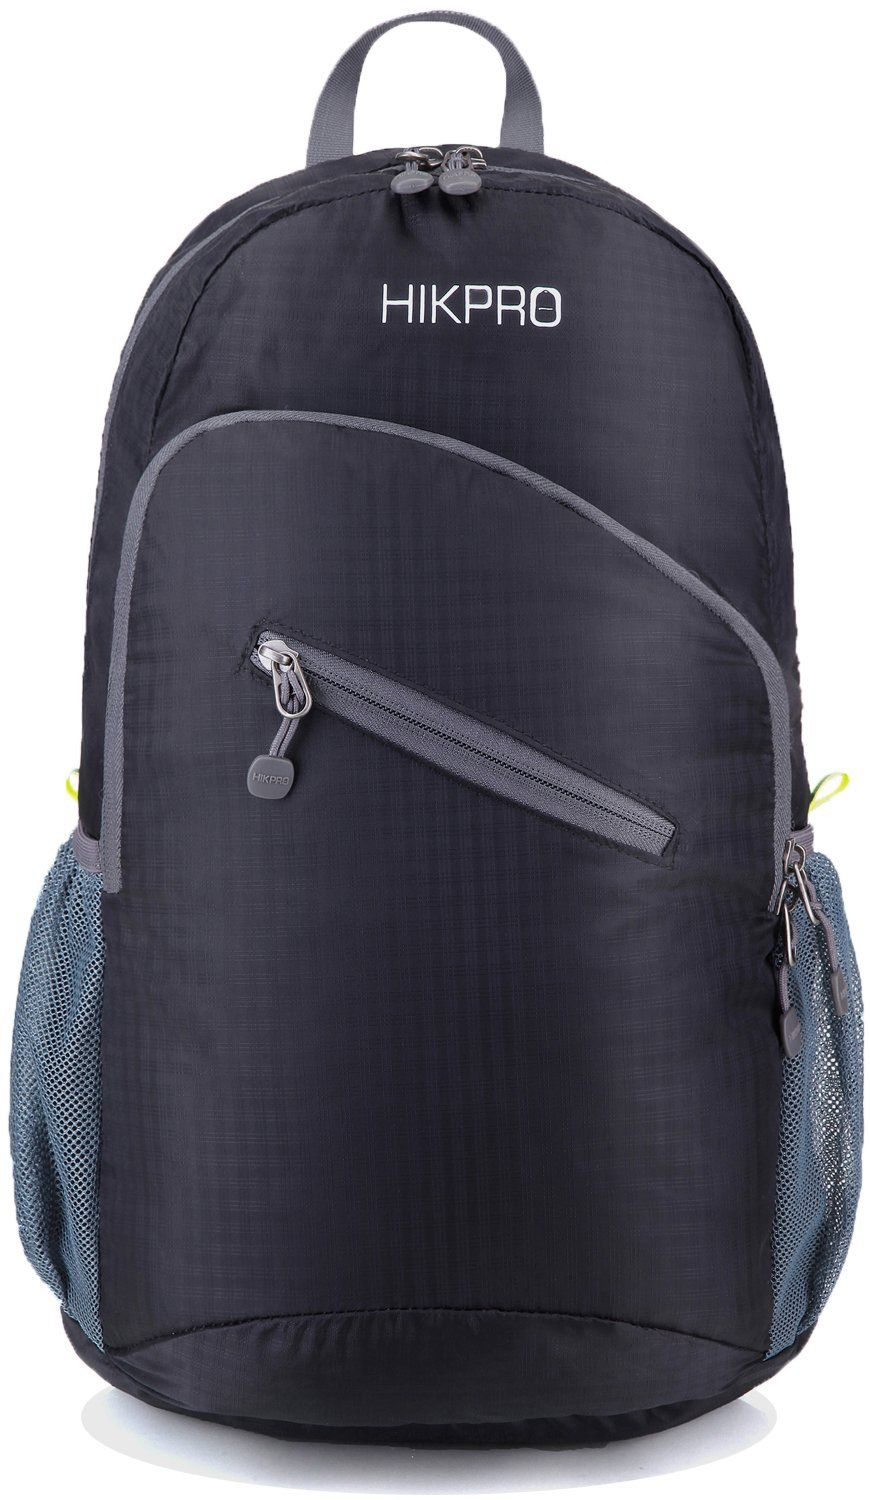 3cbae1293d2b ... Rated Ultra Lightweight Packable Backpack 25L Hiking Daypack + Most Durable  Light Backpacks for Men and Women   the Best Foldable Camping Outdoor Travel  ...